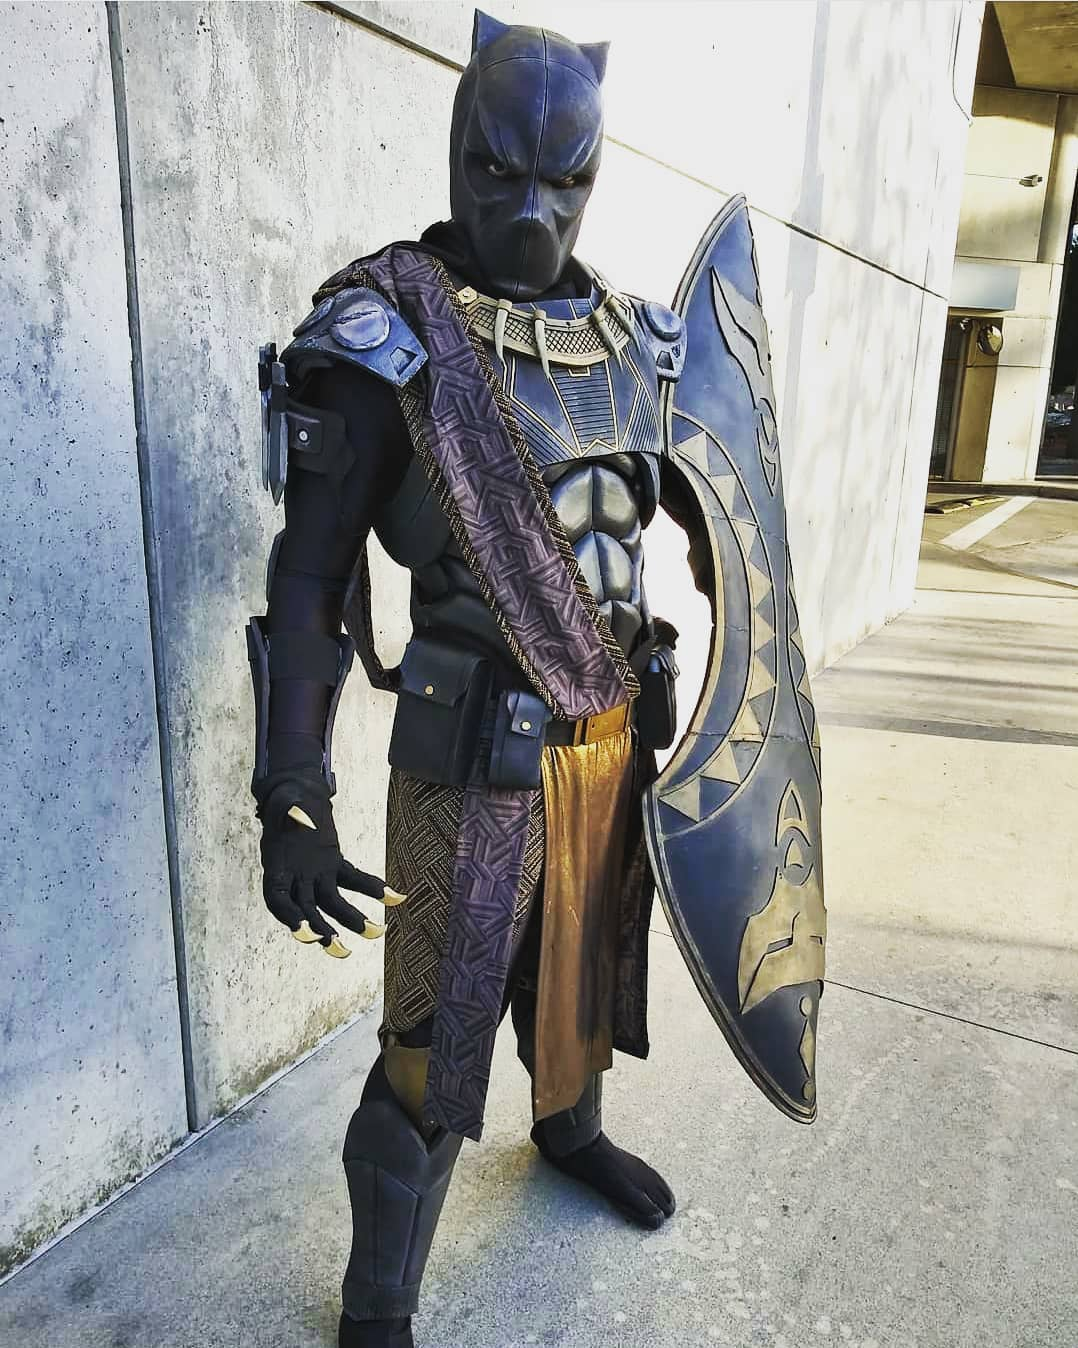 Sick Black Panther cosplay by one of the baddest around @shawshank.props bla